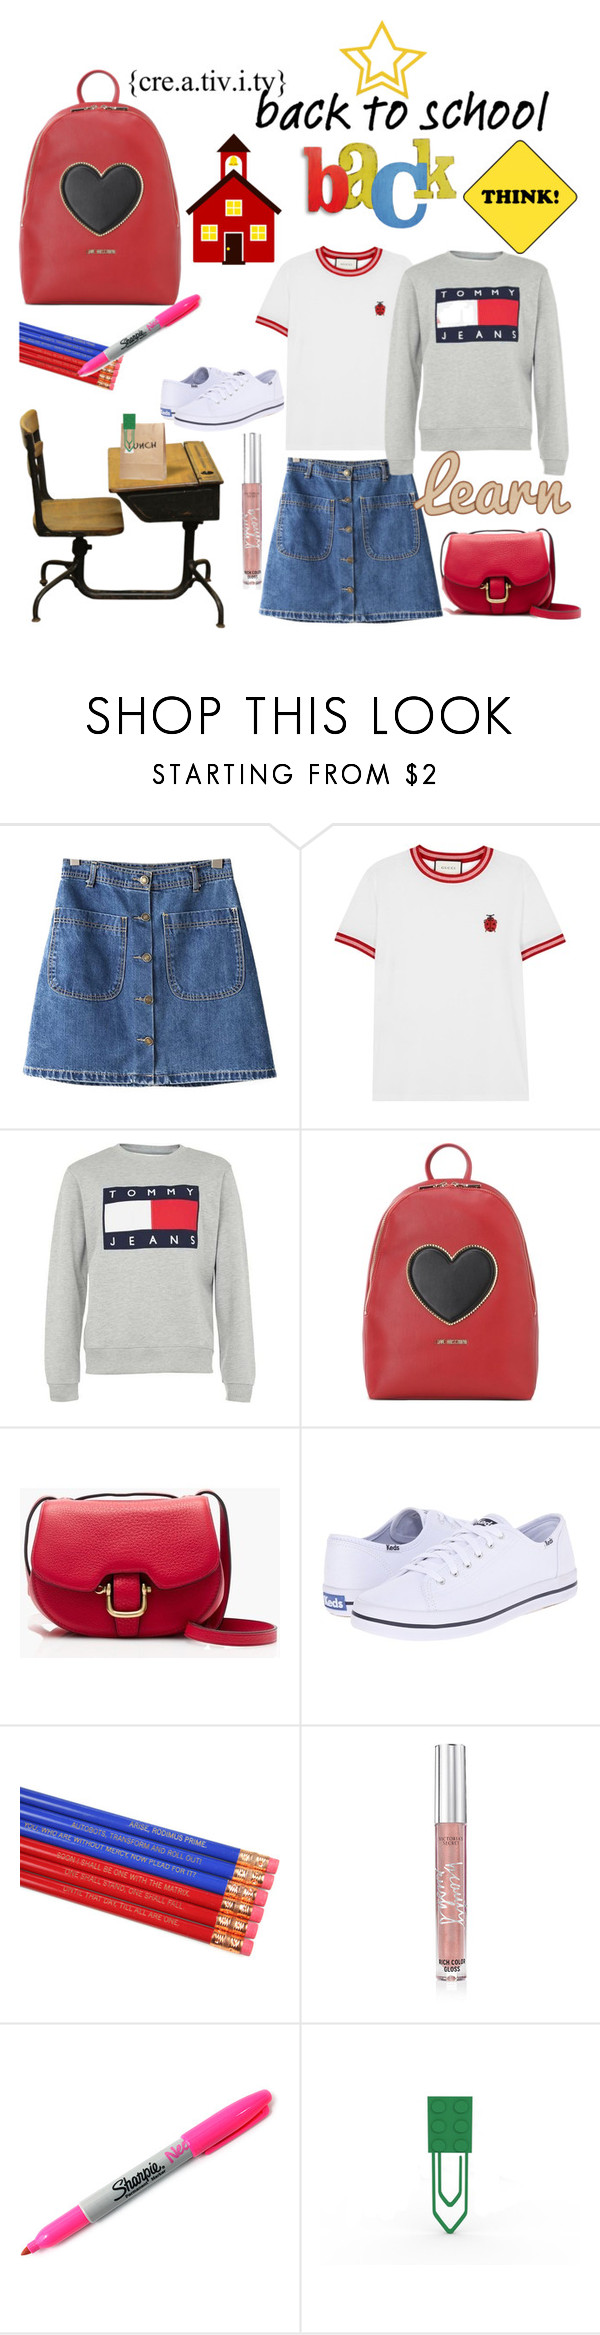 """Back to school."" by cradee ❤ liked on Polyvore featuring Chicnova Fashion, Gucci, Tommy Hilfiger, Love Moschino, J.Crew, Keds, Victoria's Secret, Sharpie and onmydesk"